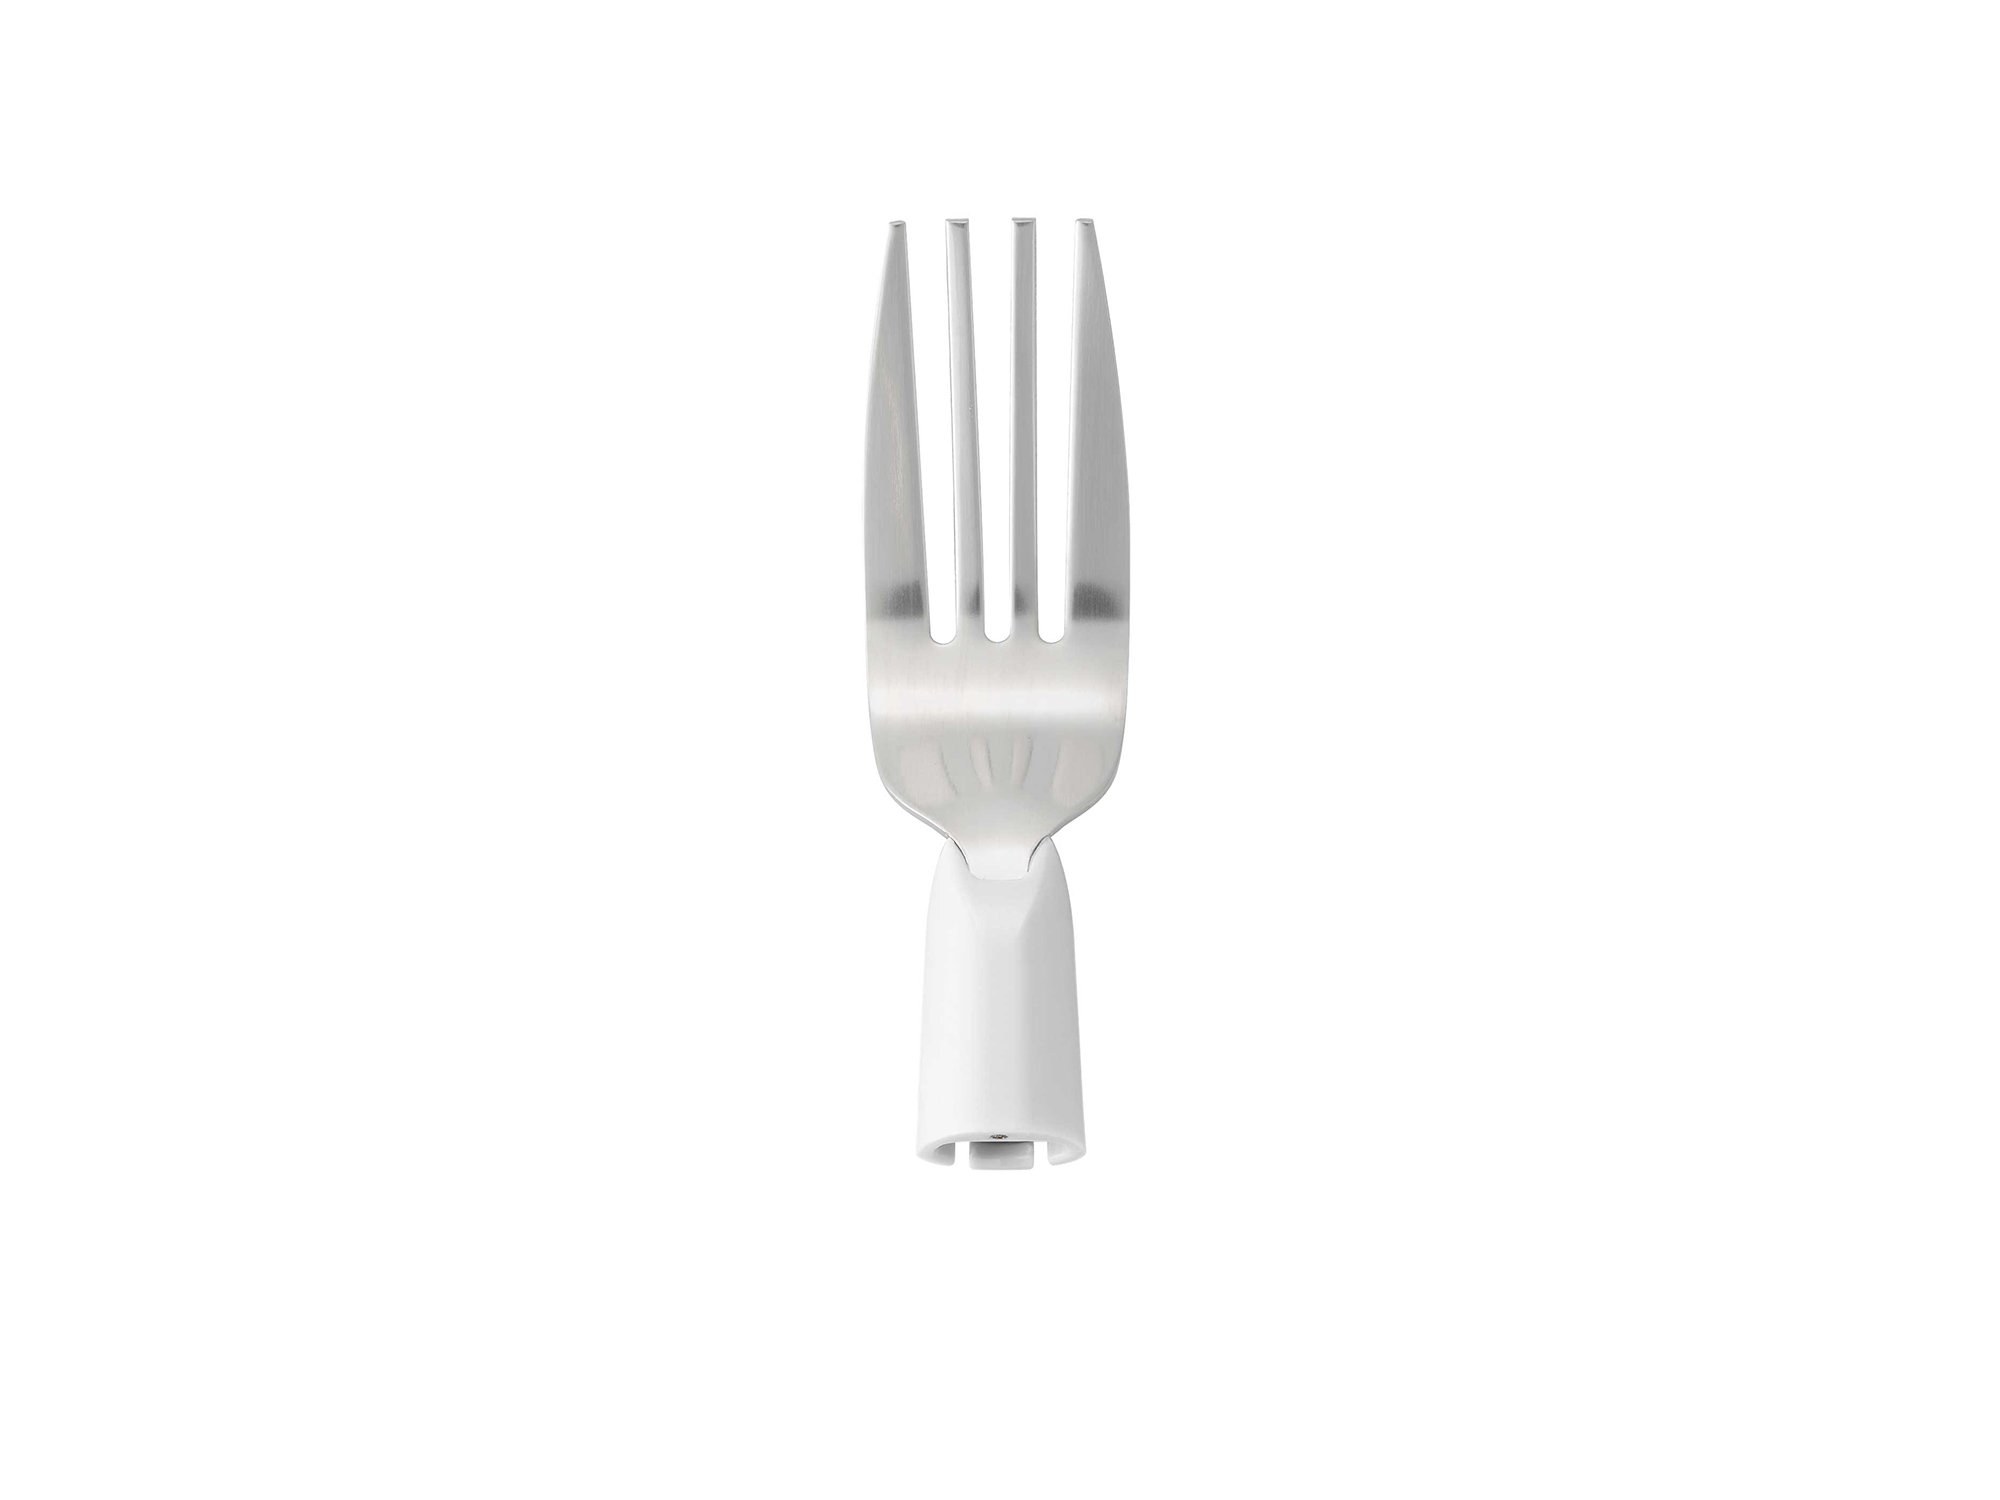 Liftware Steady Fork Attachment by Liftware